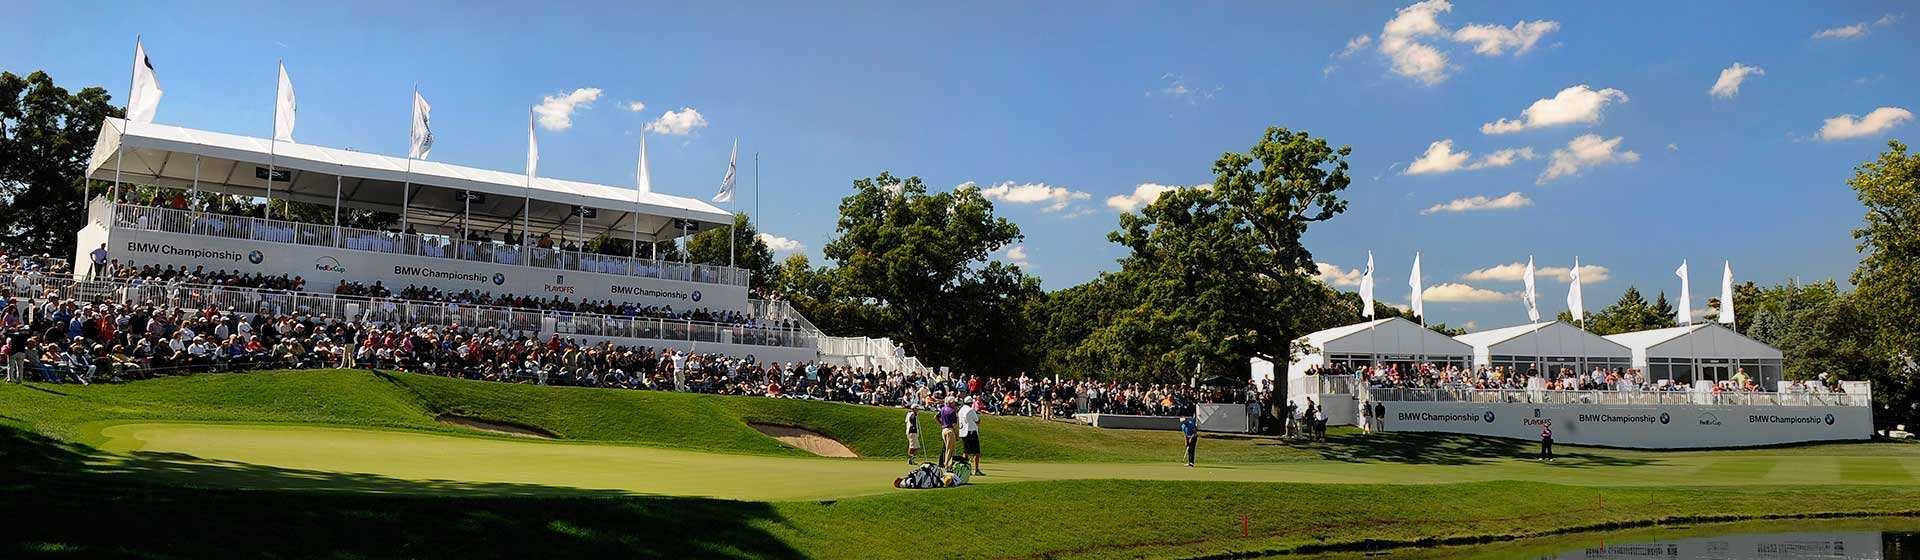 58 New BMW Championship 2020 Location Concept by BMW Championship 2020 Location